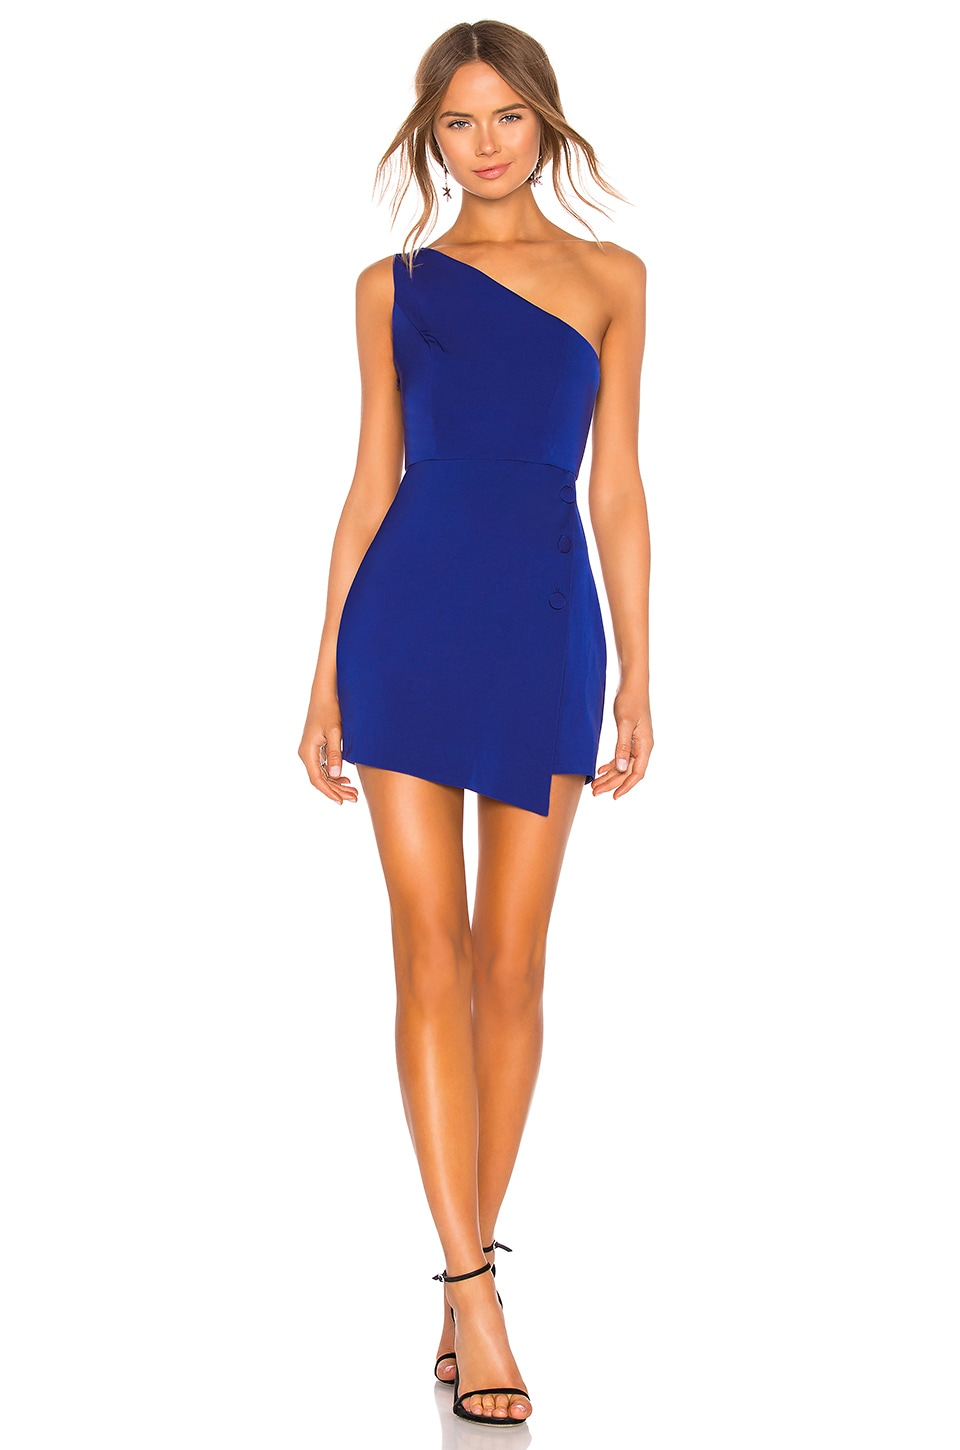 Tere Mini Dress             NBD                                                                                                       CA$ 196.79 10